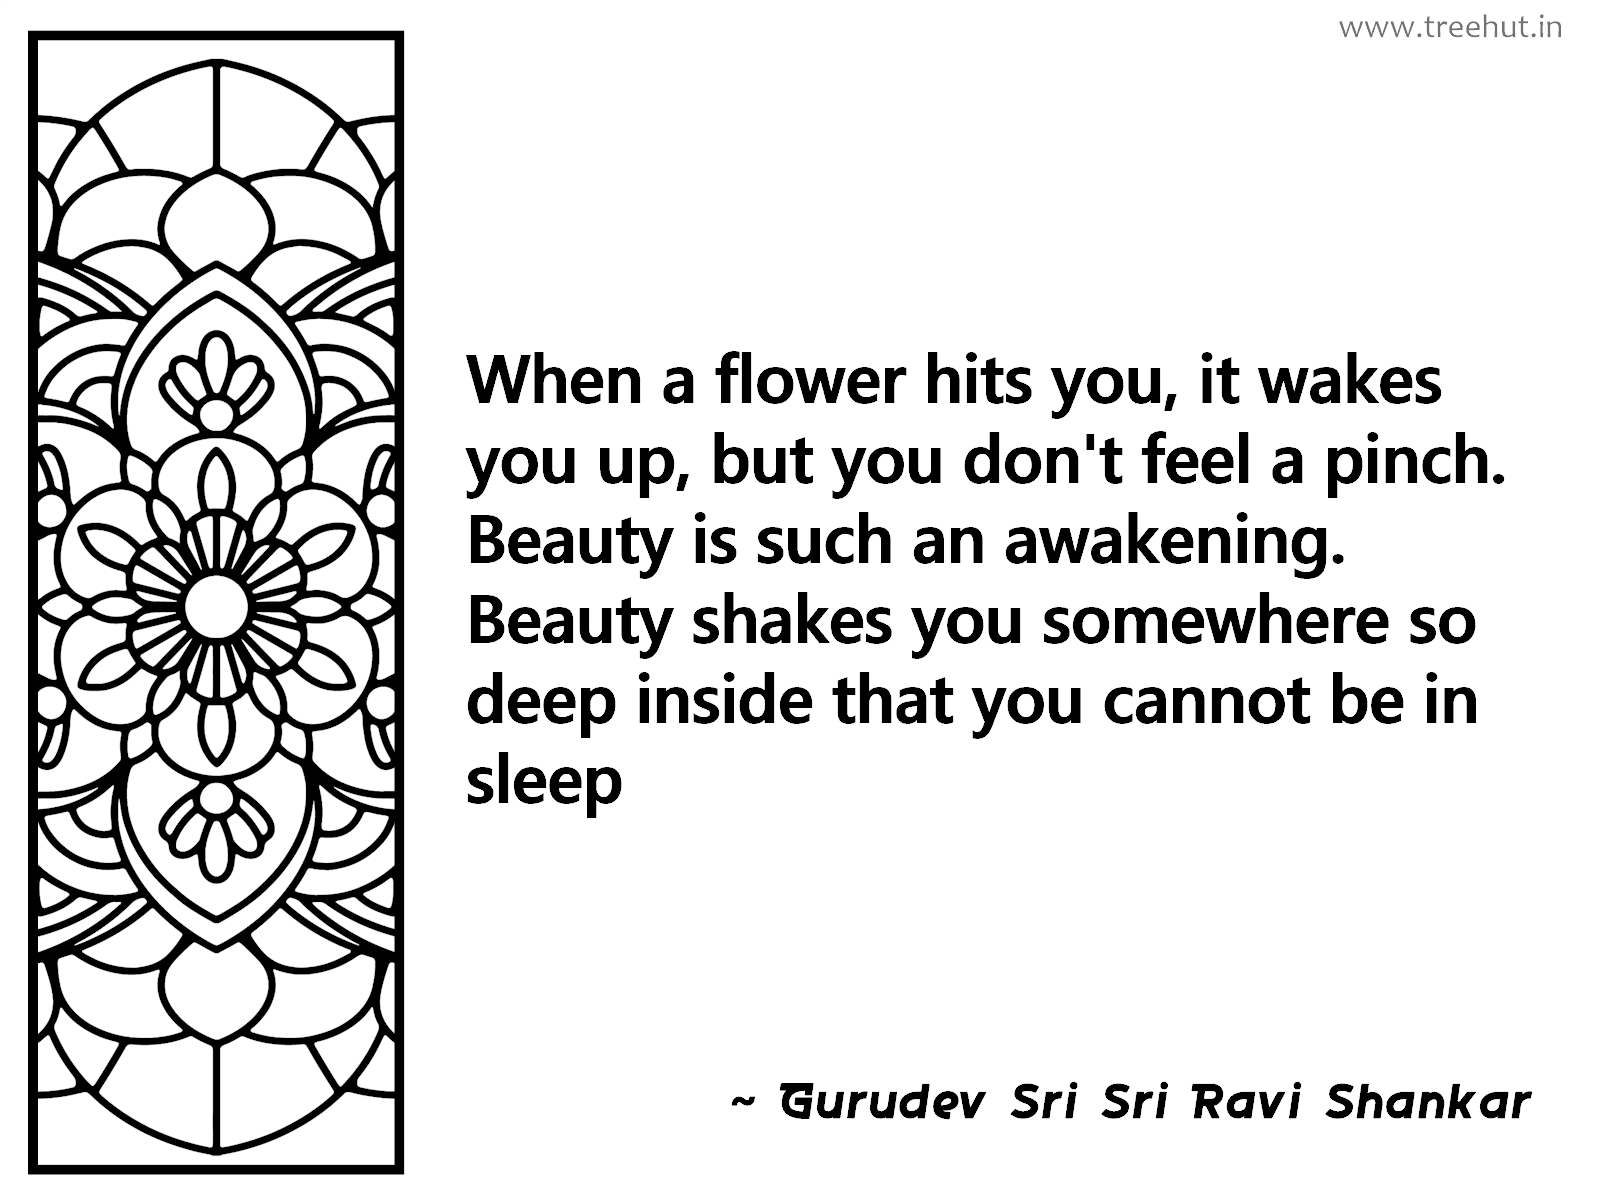 When a flower hits you, it wakes you up, but you don't feel a pinch. Beauty is such an awakening. Beauty shakes you somewhere so deep inside that you cannot be in sleep Inspirational Quote by Gurudev Sri Sri Ravi Shankar, coloring pages